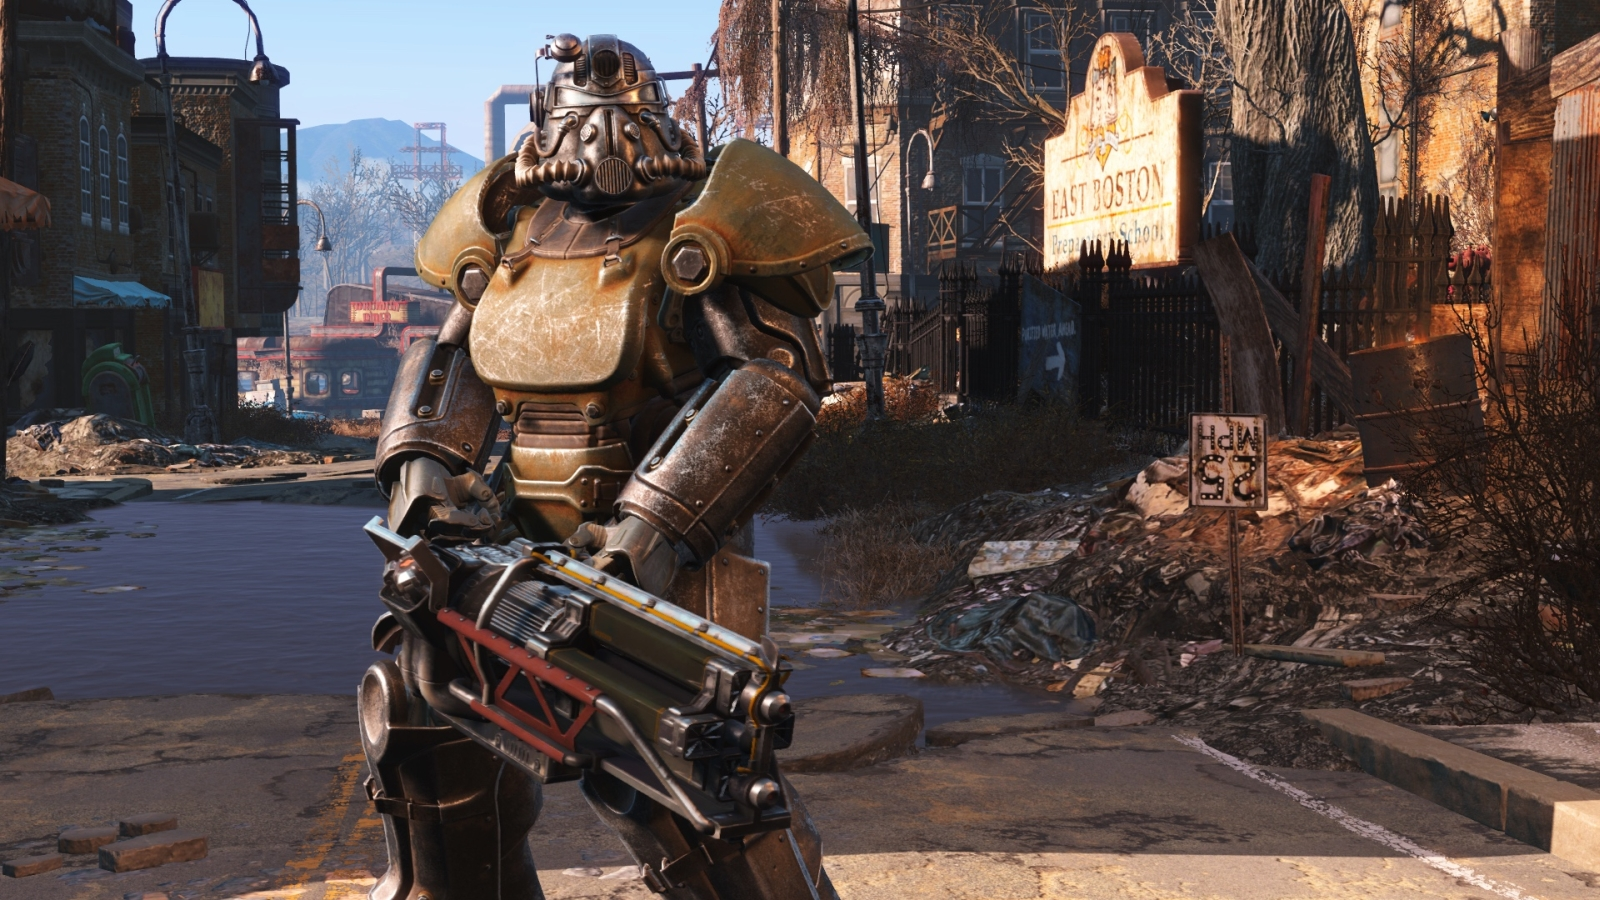 Virtual Wasteland — Fallout 4 VR Vive review – GAMING TREND